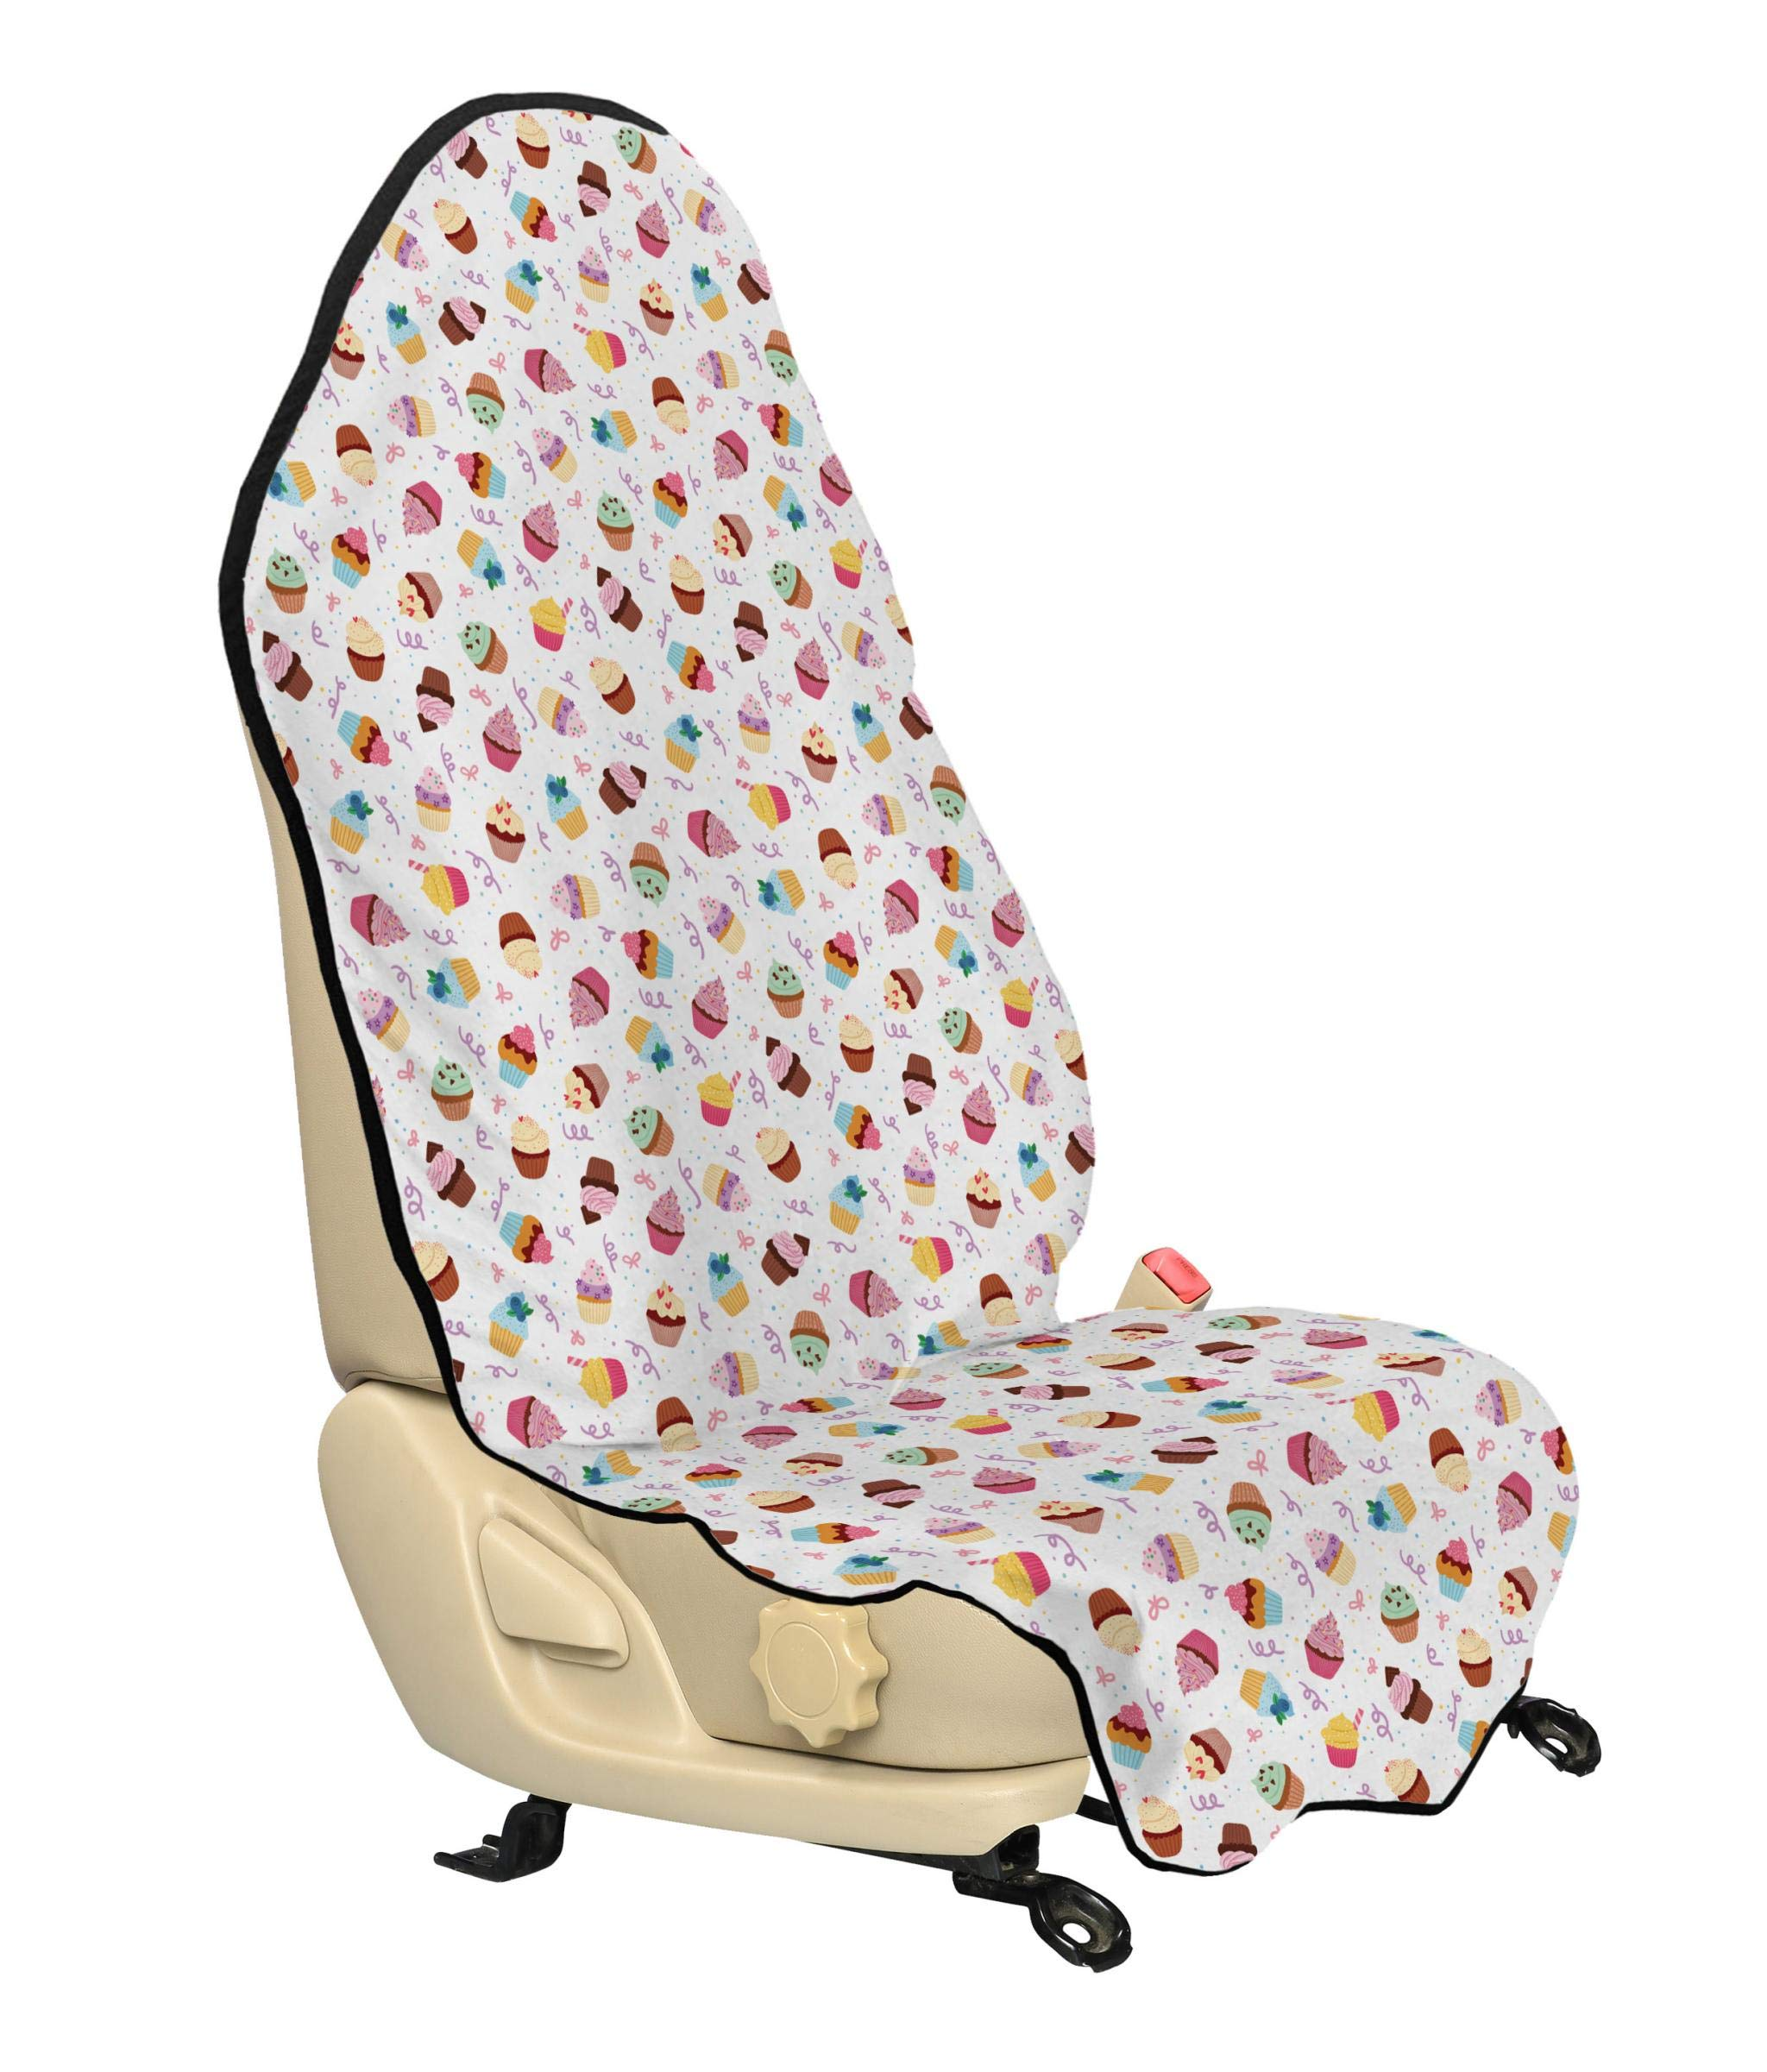 Lunarable Dessert Car Seat Hoody, Cupcakes Yummy Kitchen Dessert Birthday Celebration Valentines Day Happiness Design, Car Seat Cover Protector Non Slip Backing Universal Fit, 30'' X 57'', Pink Brown by Lunarable